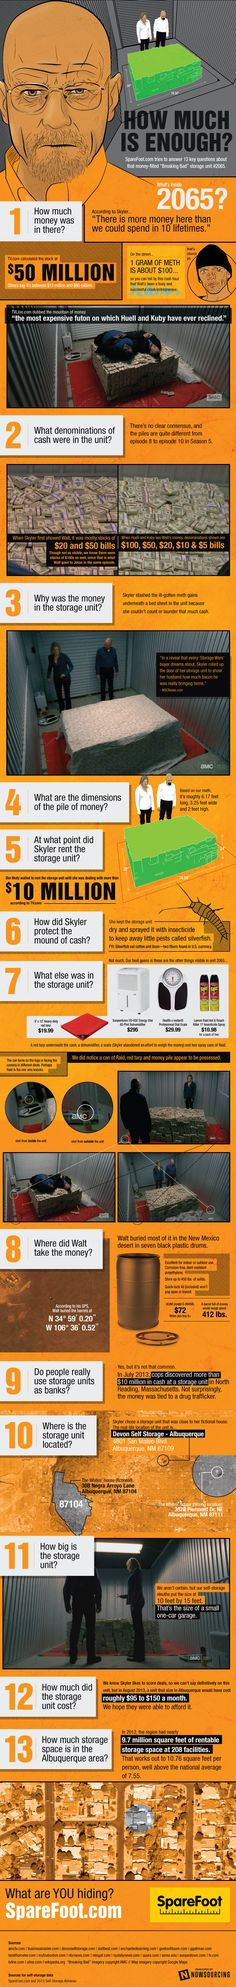 What happens when self storage adnetwork (SpareFoot) and best TV show ever (Breaking Bad) combine?  You get this sweet little infographic.